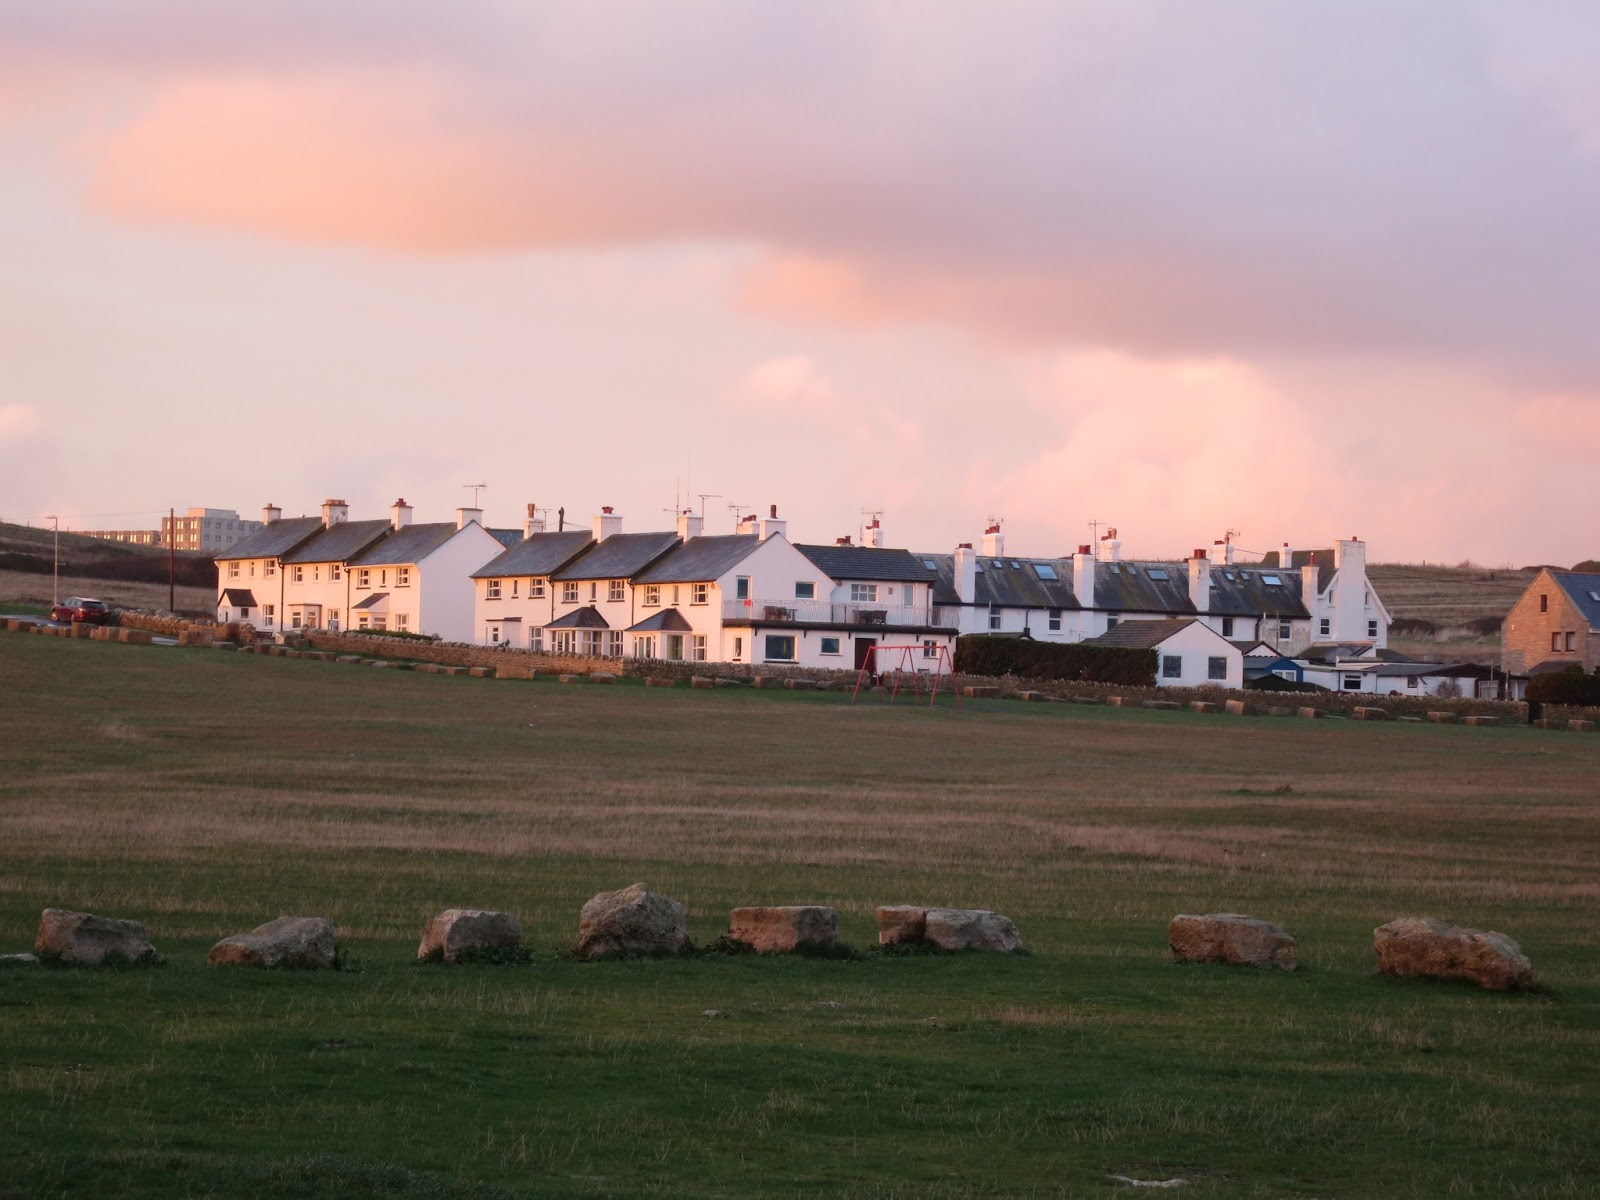 The tightly packed group of white houses at Portland Bill reflect evening light.